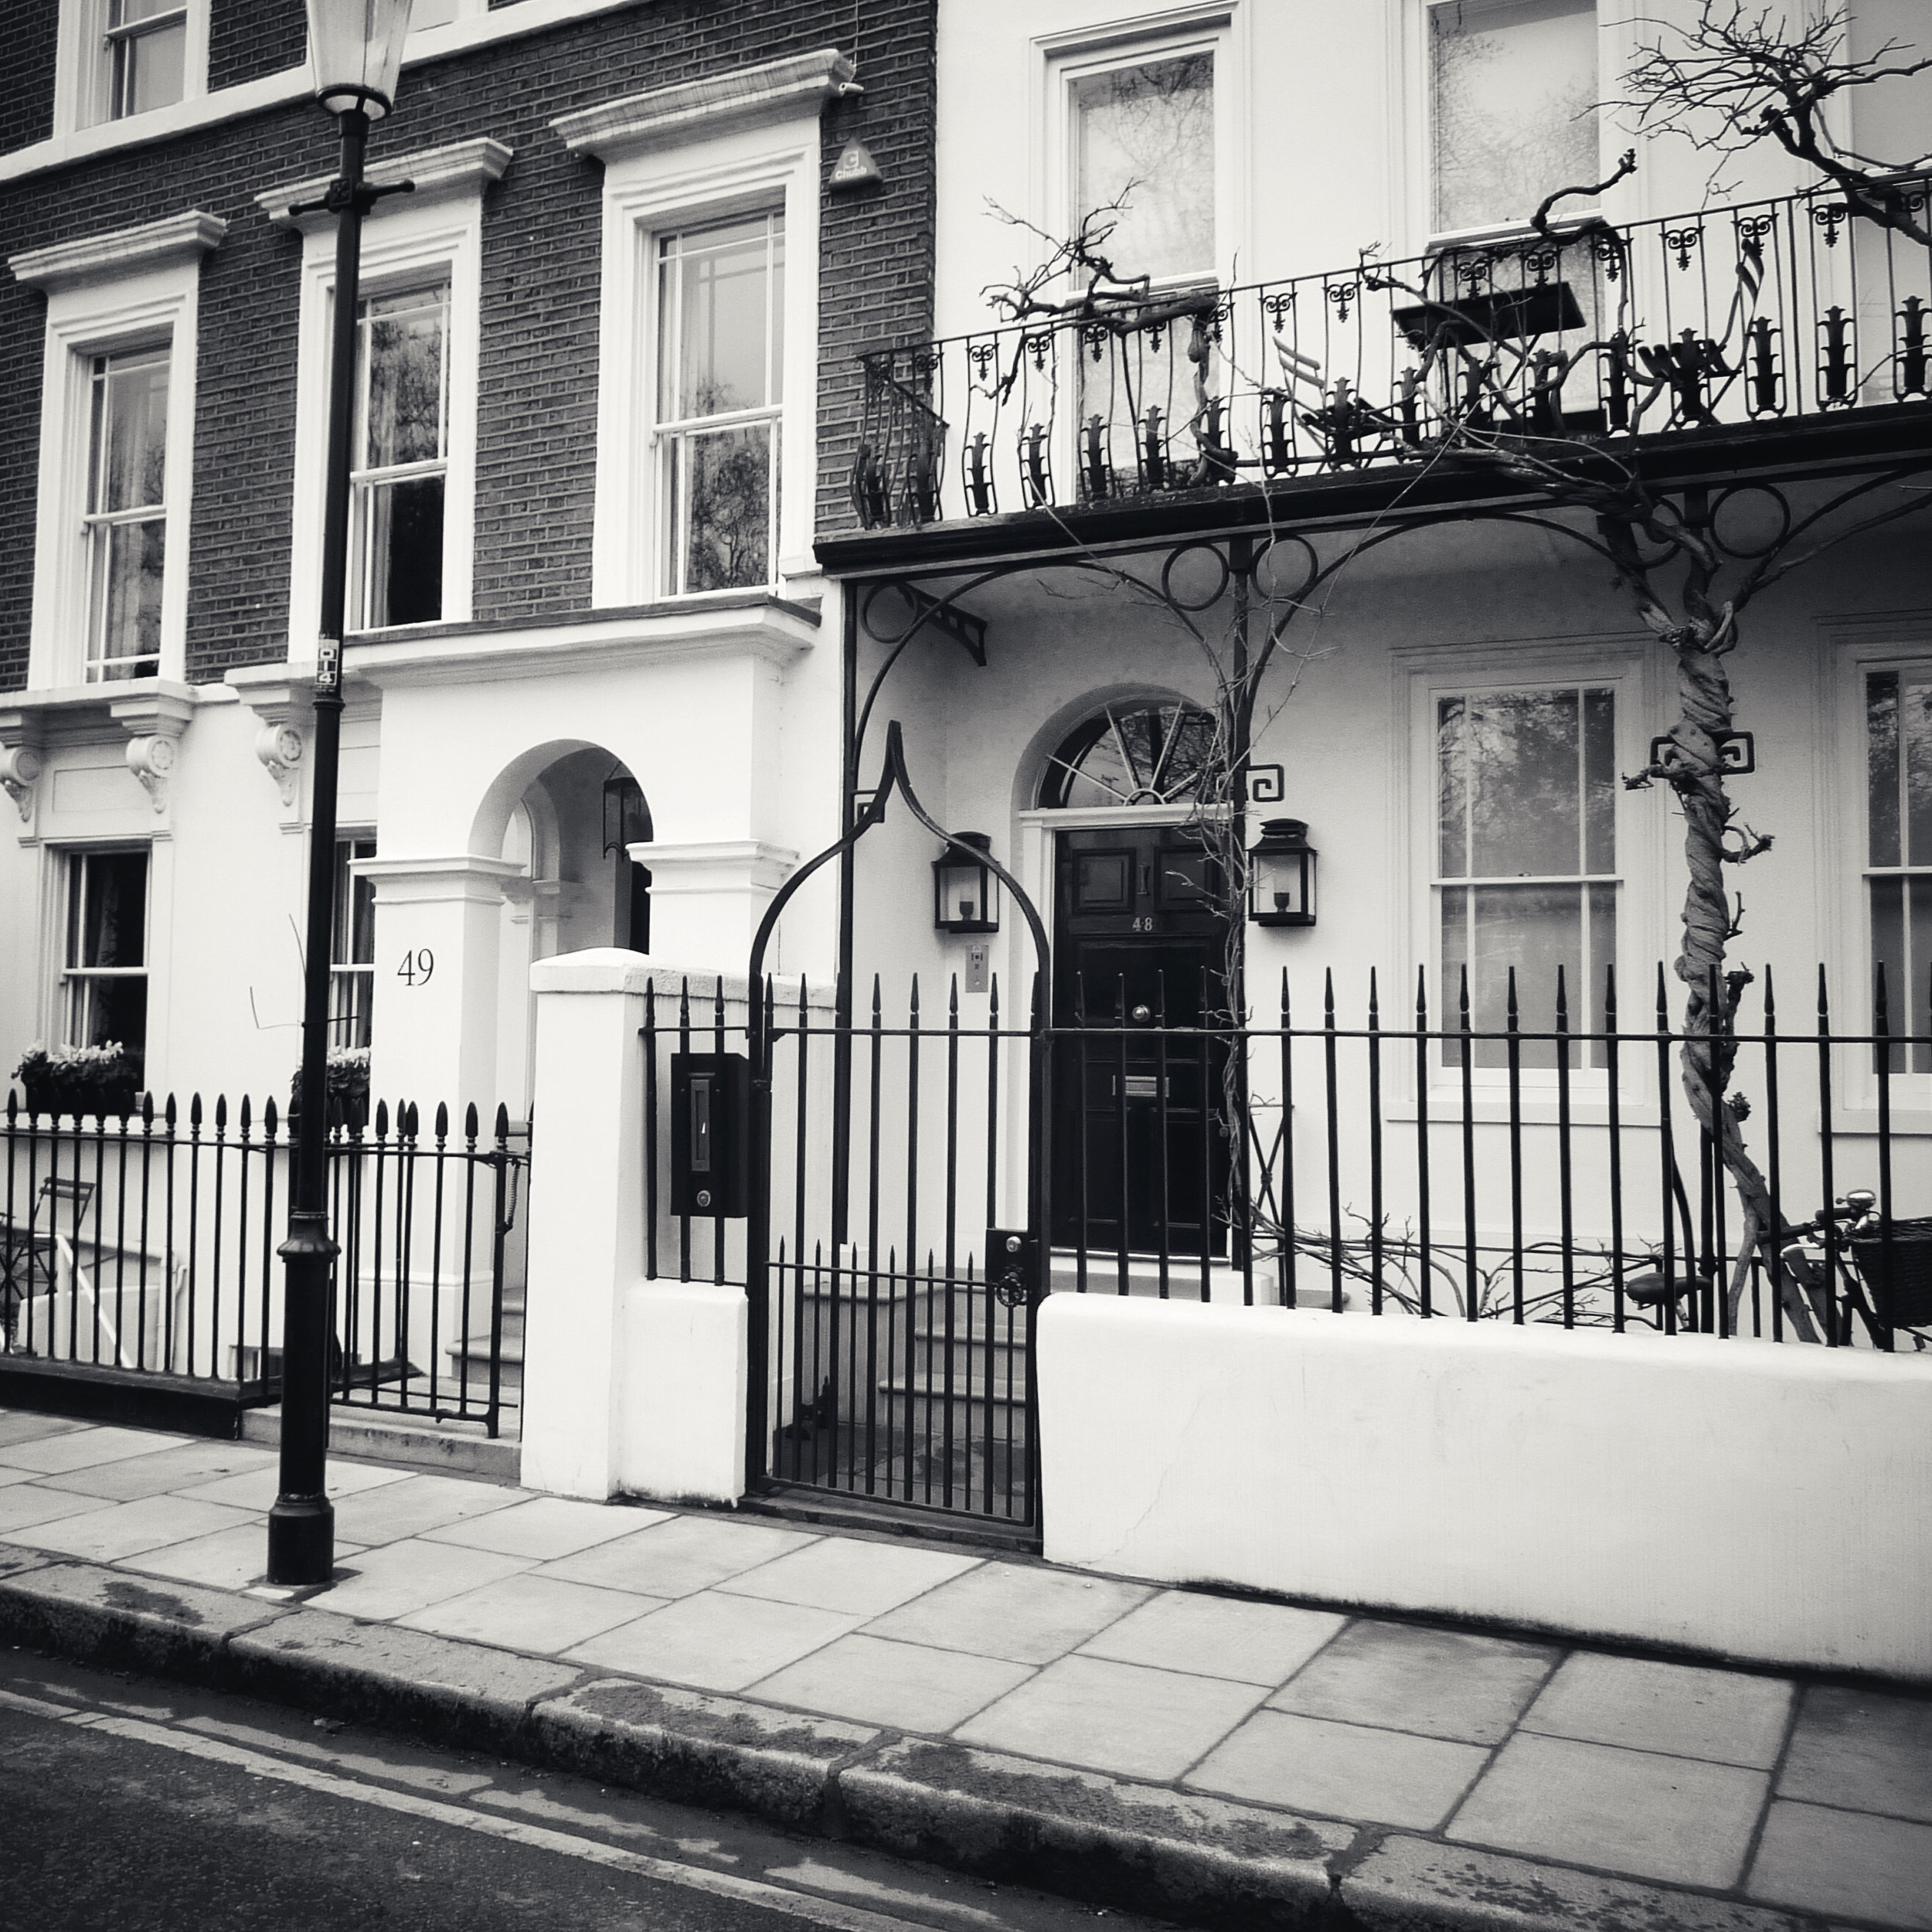 Mick & Marianne's (and Bianca's) Chelsea home